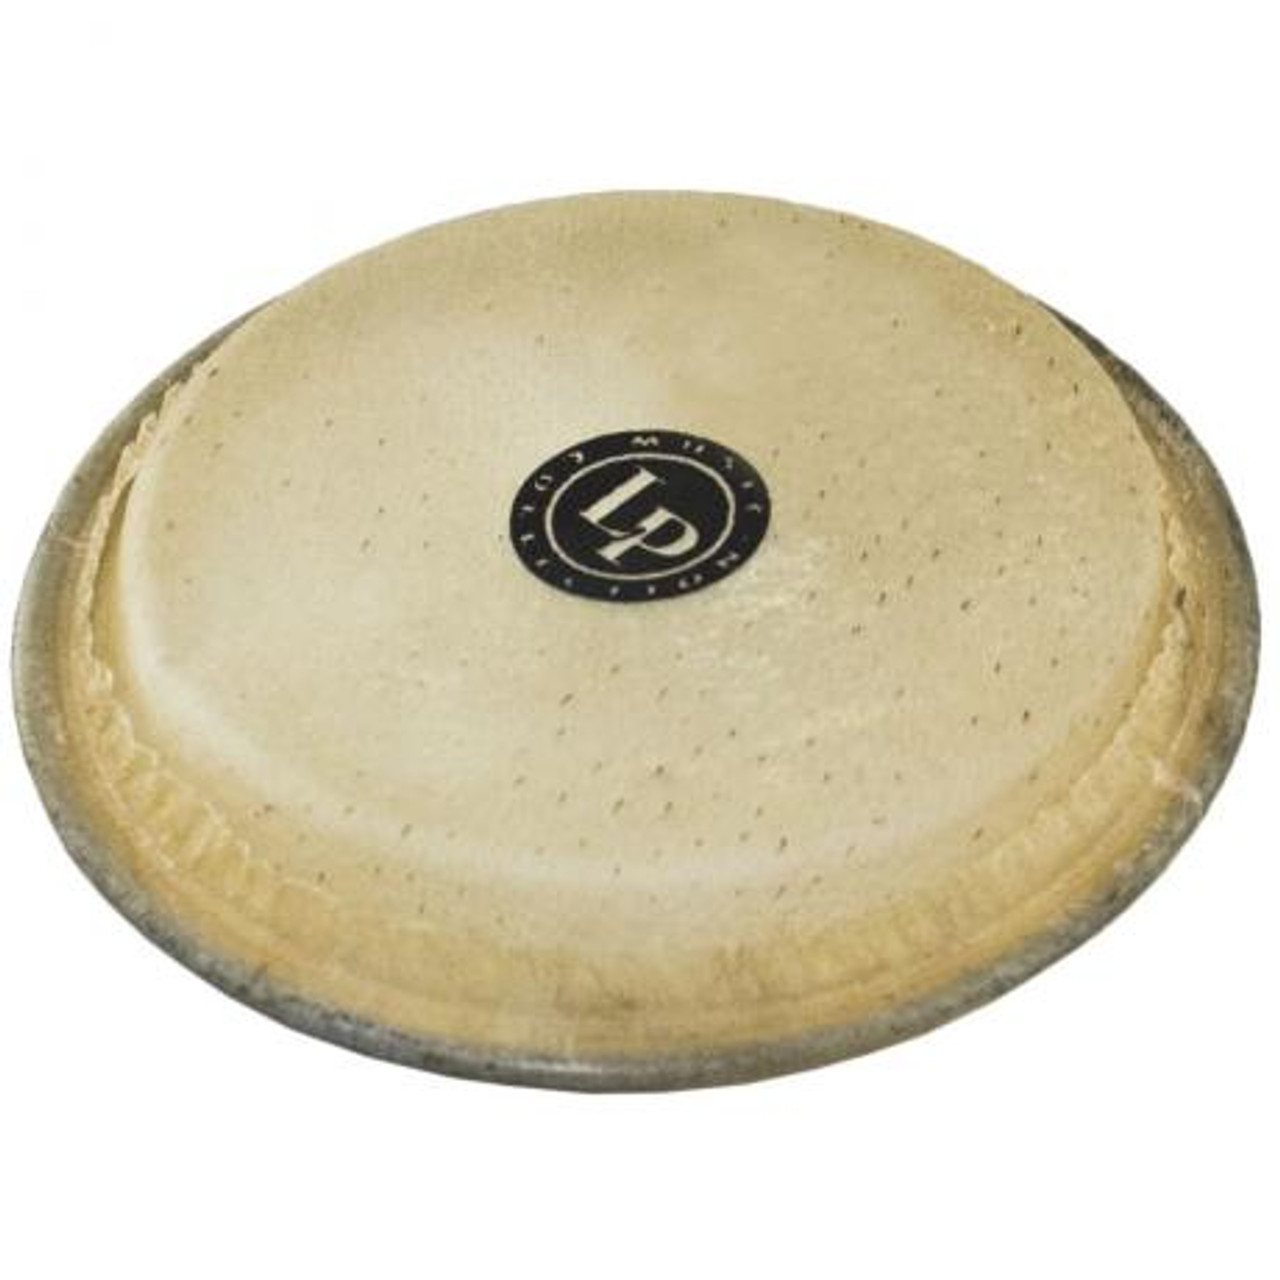 Drum Workshop Lpmc Mini Bongo Head 3-1/2